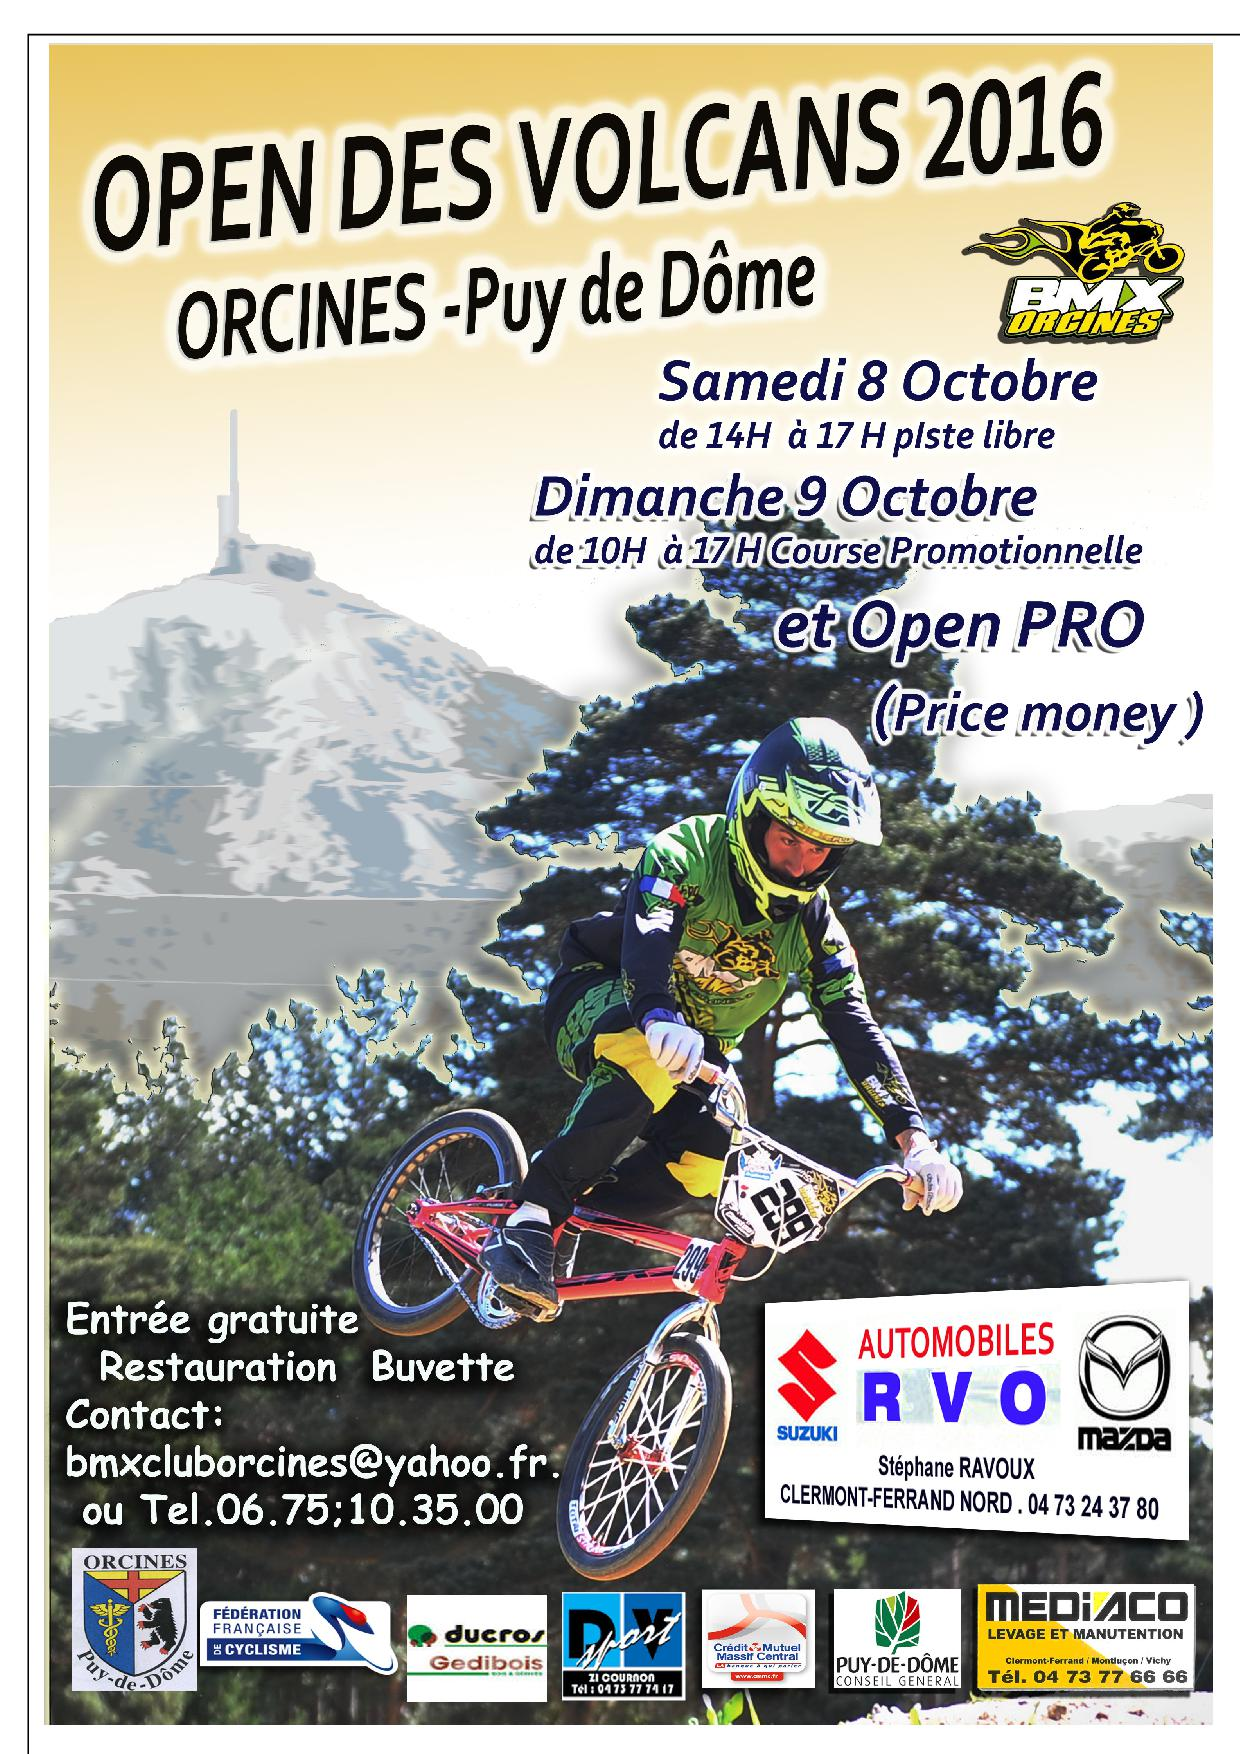 invitation trophedevolcans